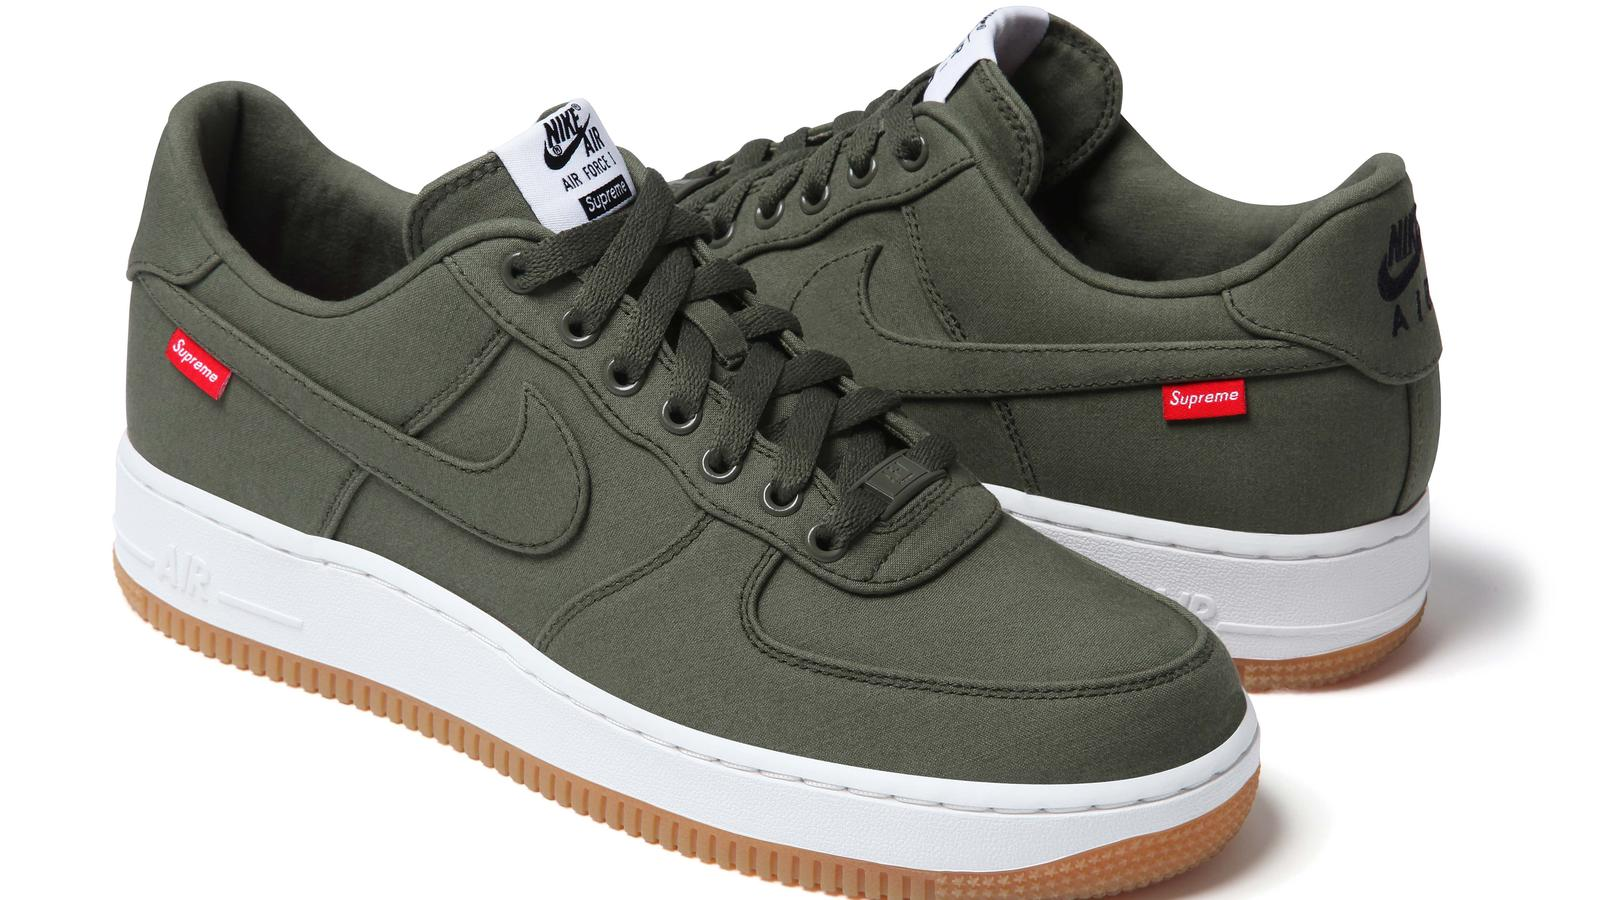 Nike_Air_Force_1_Supreme_Olive_Colorway